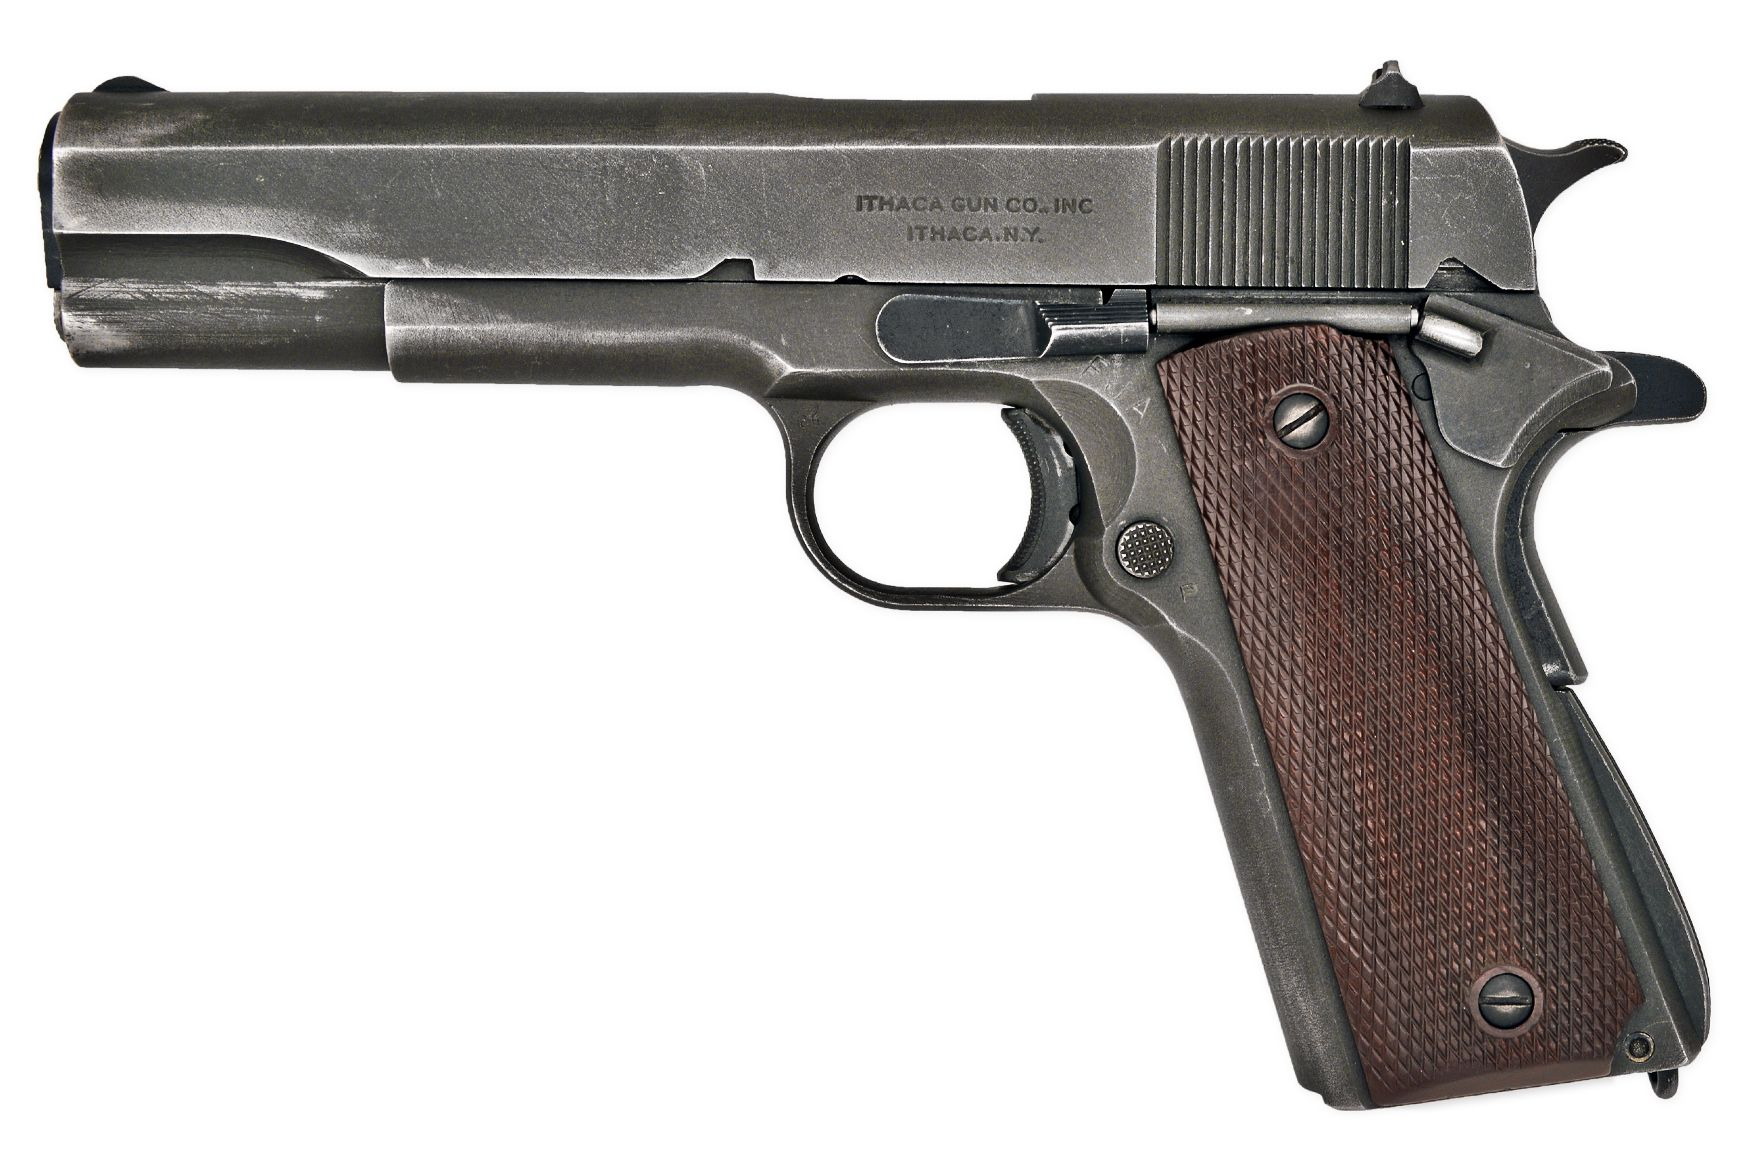 Anatomy-Pistol-US-M1911A1 WWII 1911 Ithaca  45ACP COLT